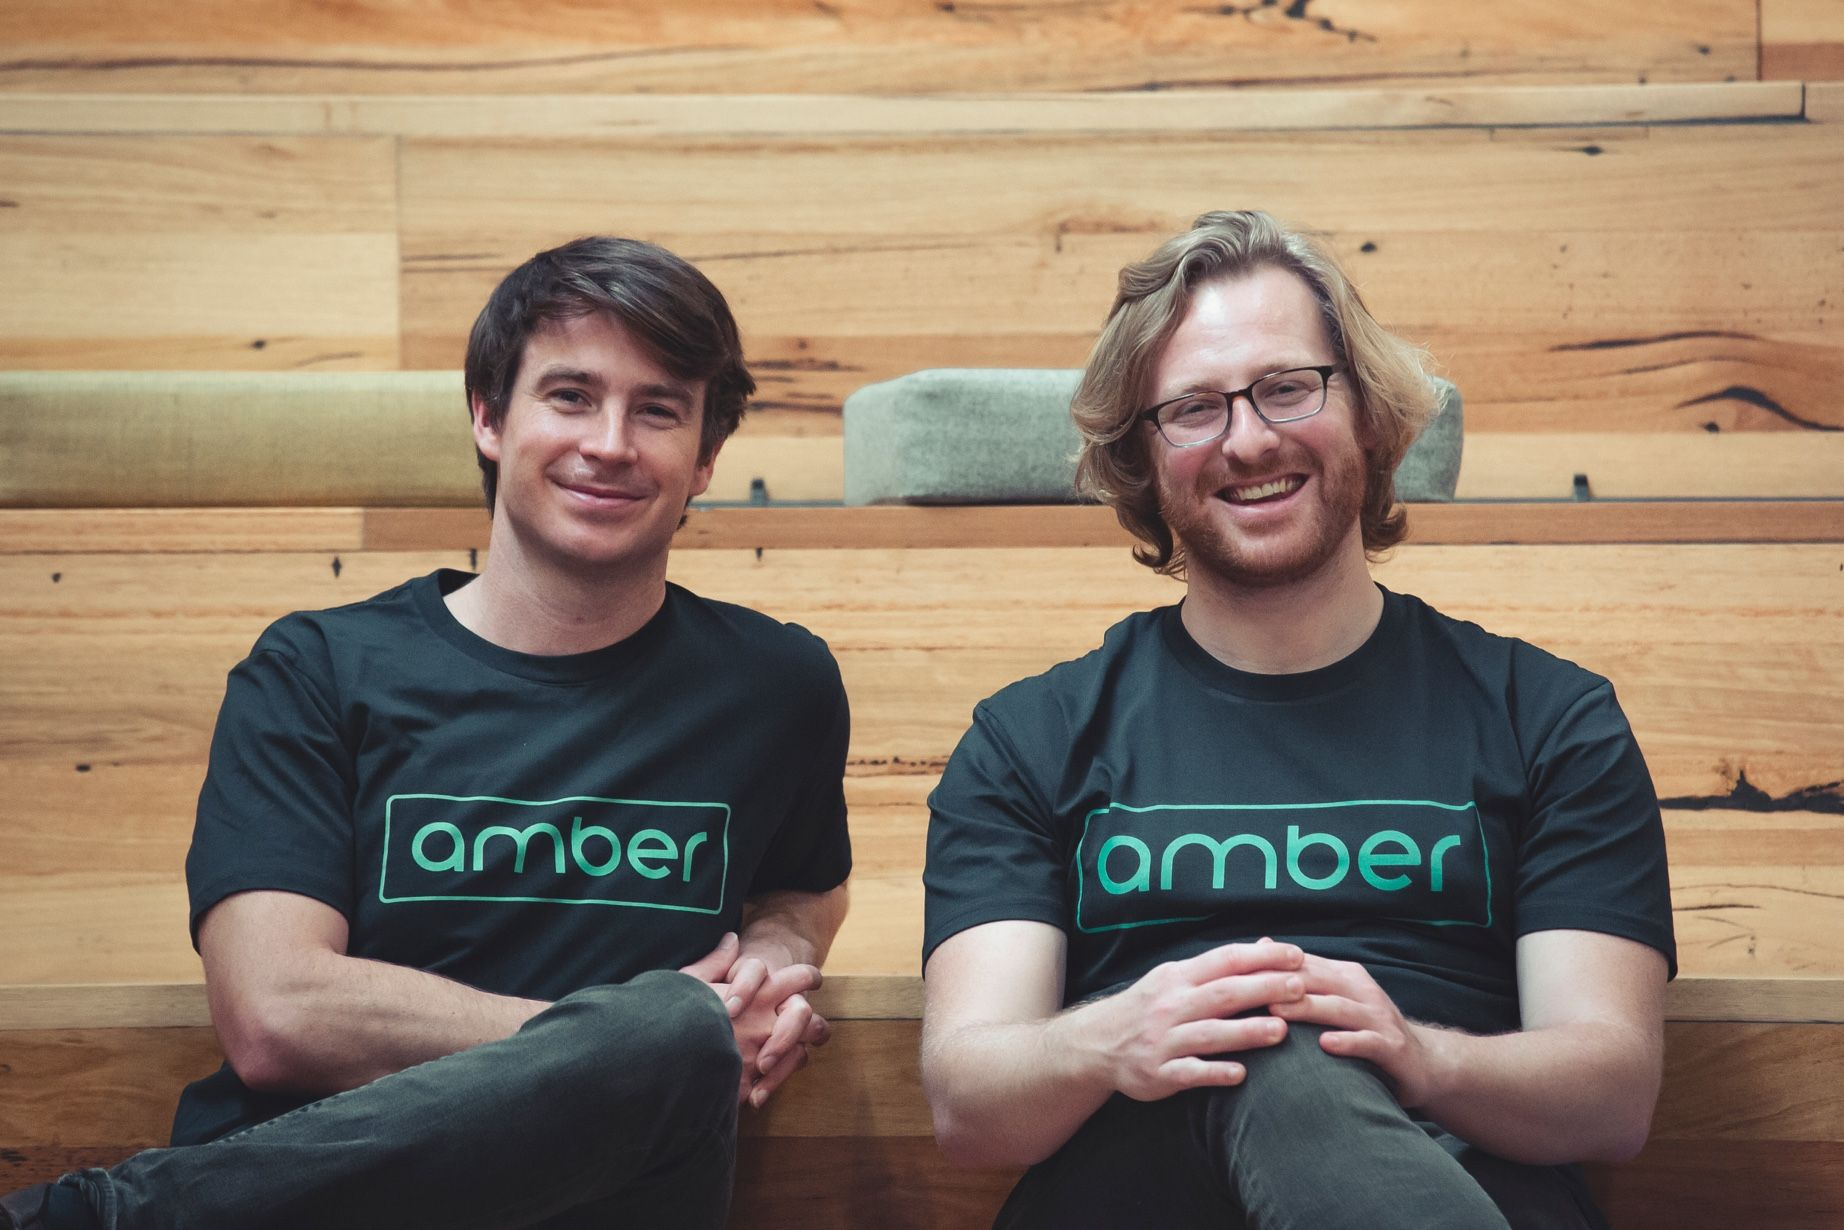 Co-Founders of Amber Electric, Chris and Dan sitting next to each other.